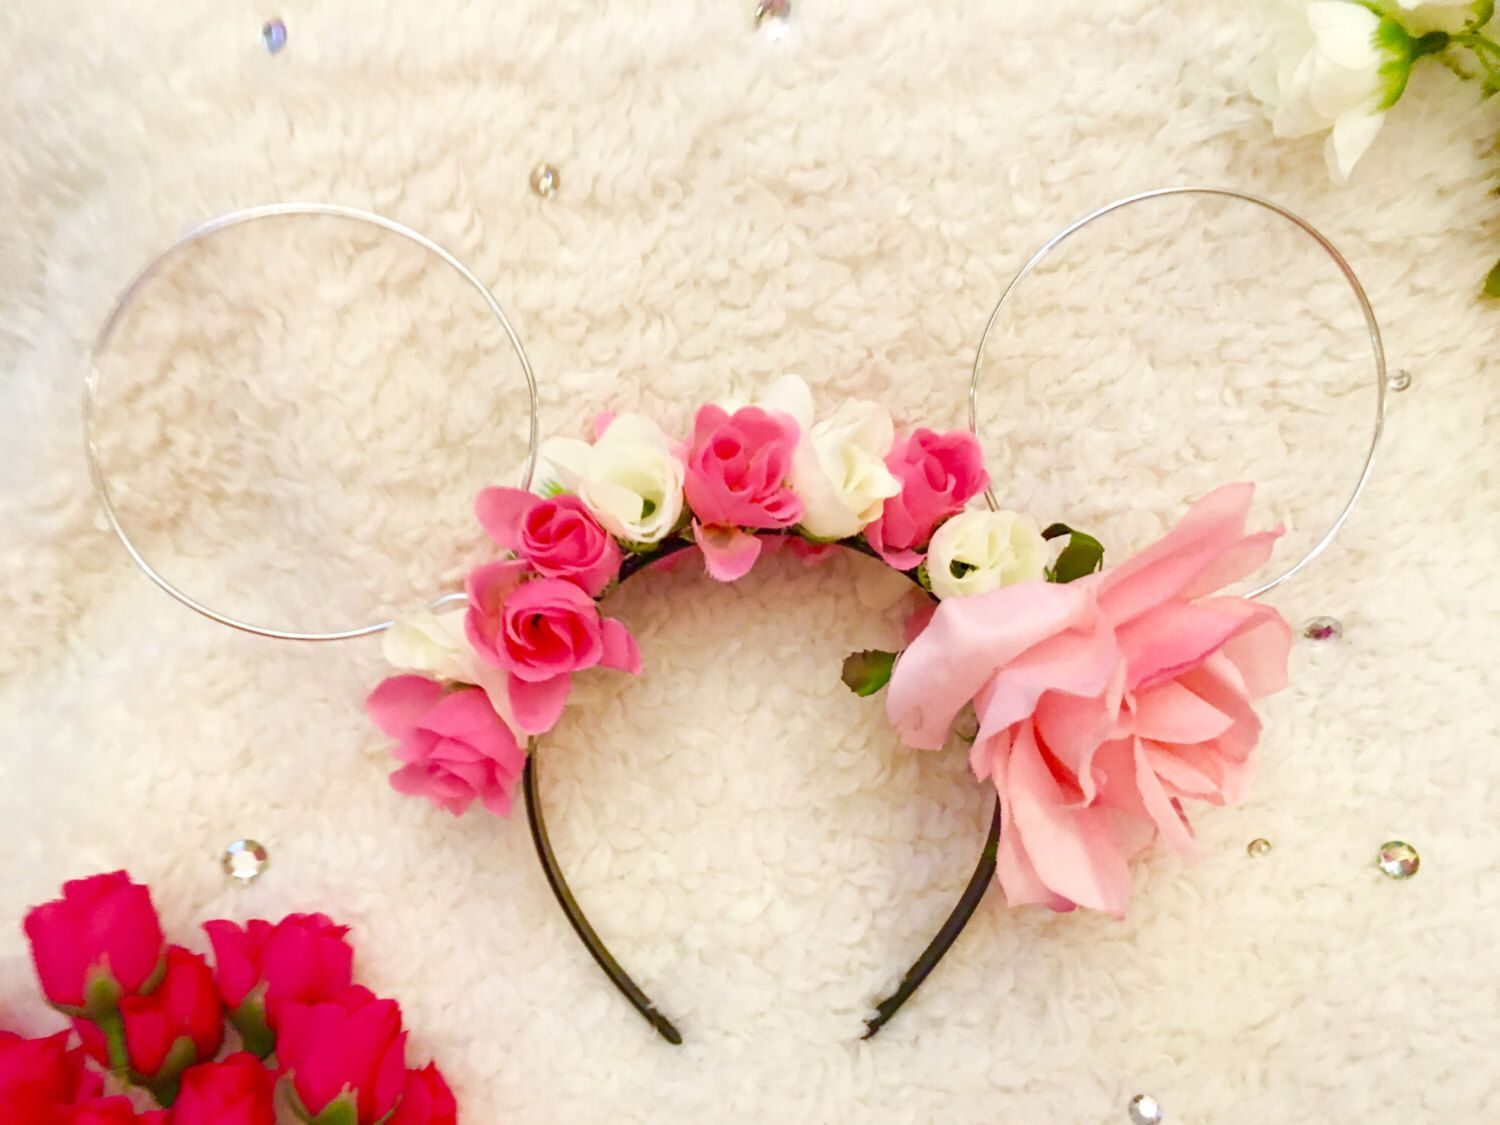 Wire minnie ear flower crown by dylansdisdesigns on etsy httpswww wire minnie ear flower crown by dylansdisdesigns on etsy httpsetsy izmirmasajfo